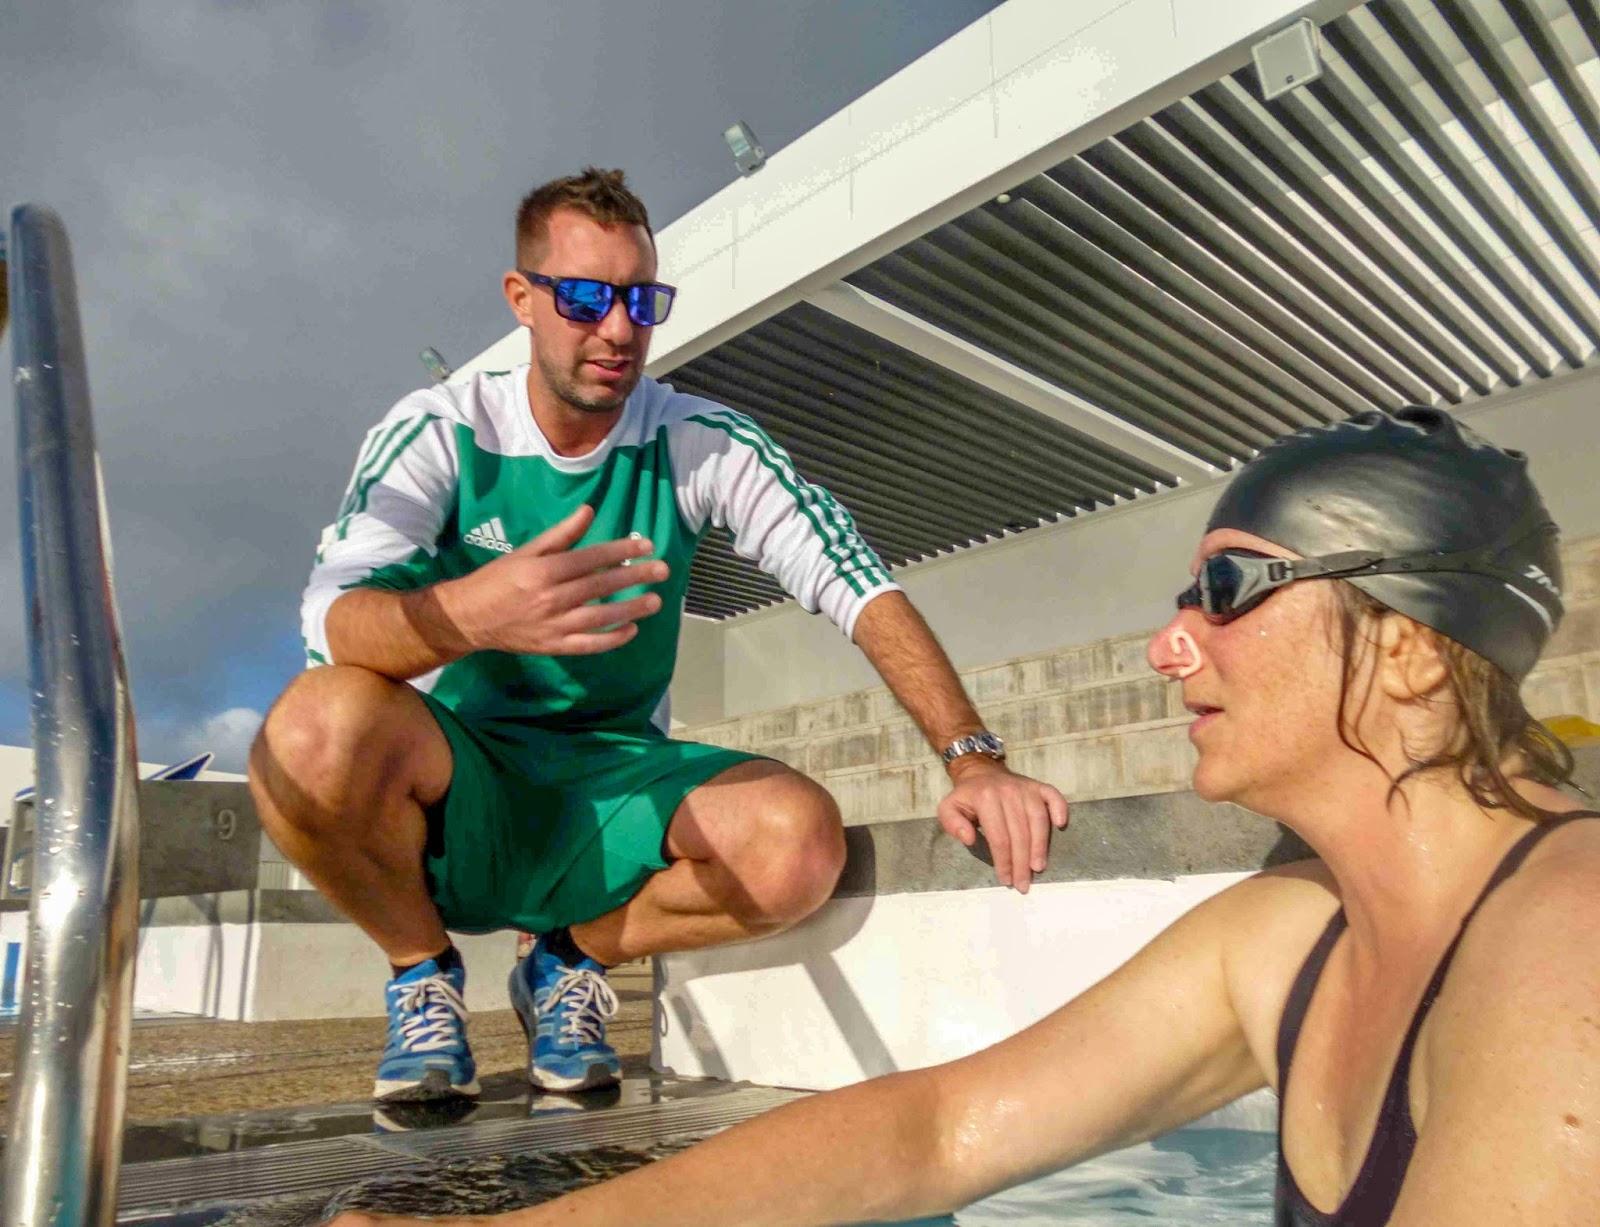 health benefits of triathlons Physical benefits of triathlons for boys may 15 2016 exercise through competitive sport is well known to produce many positive physical and mental effects.